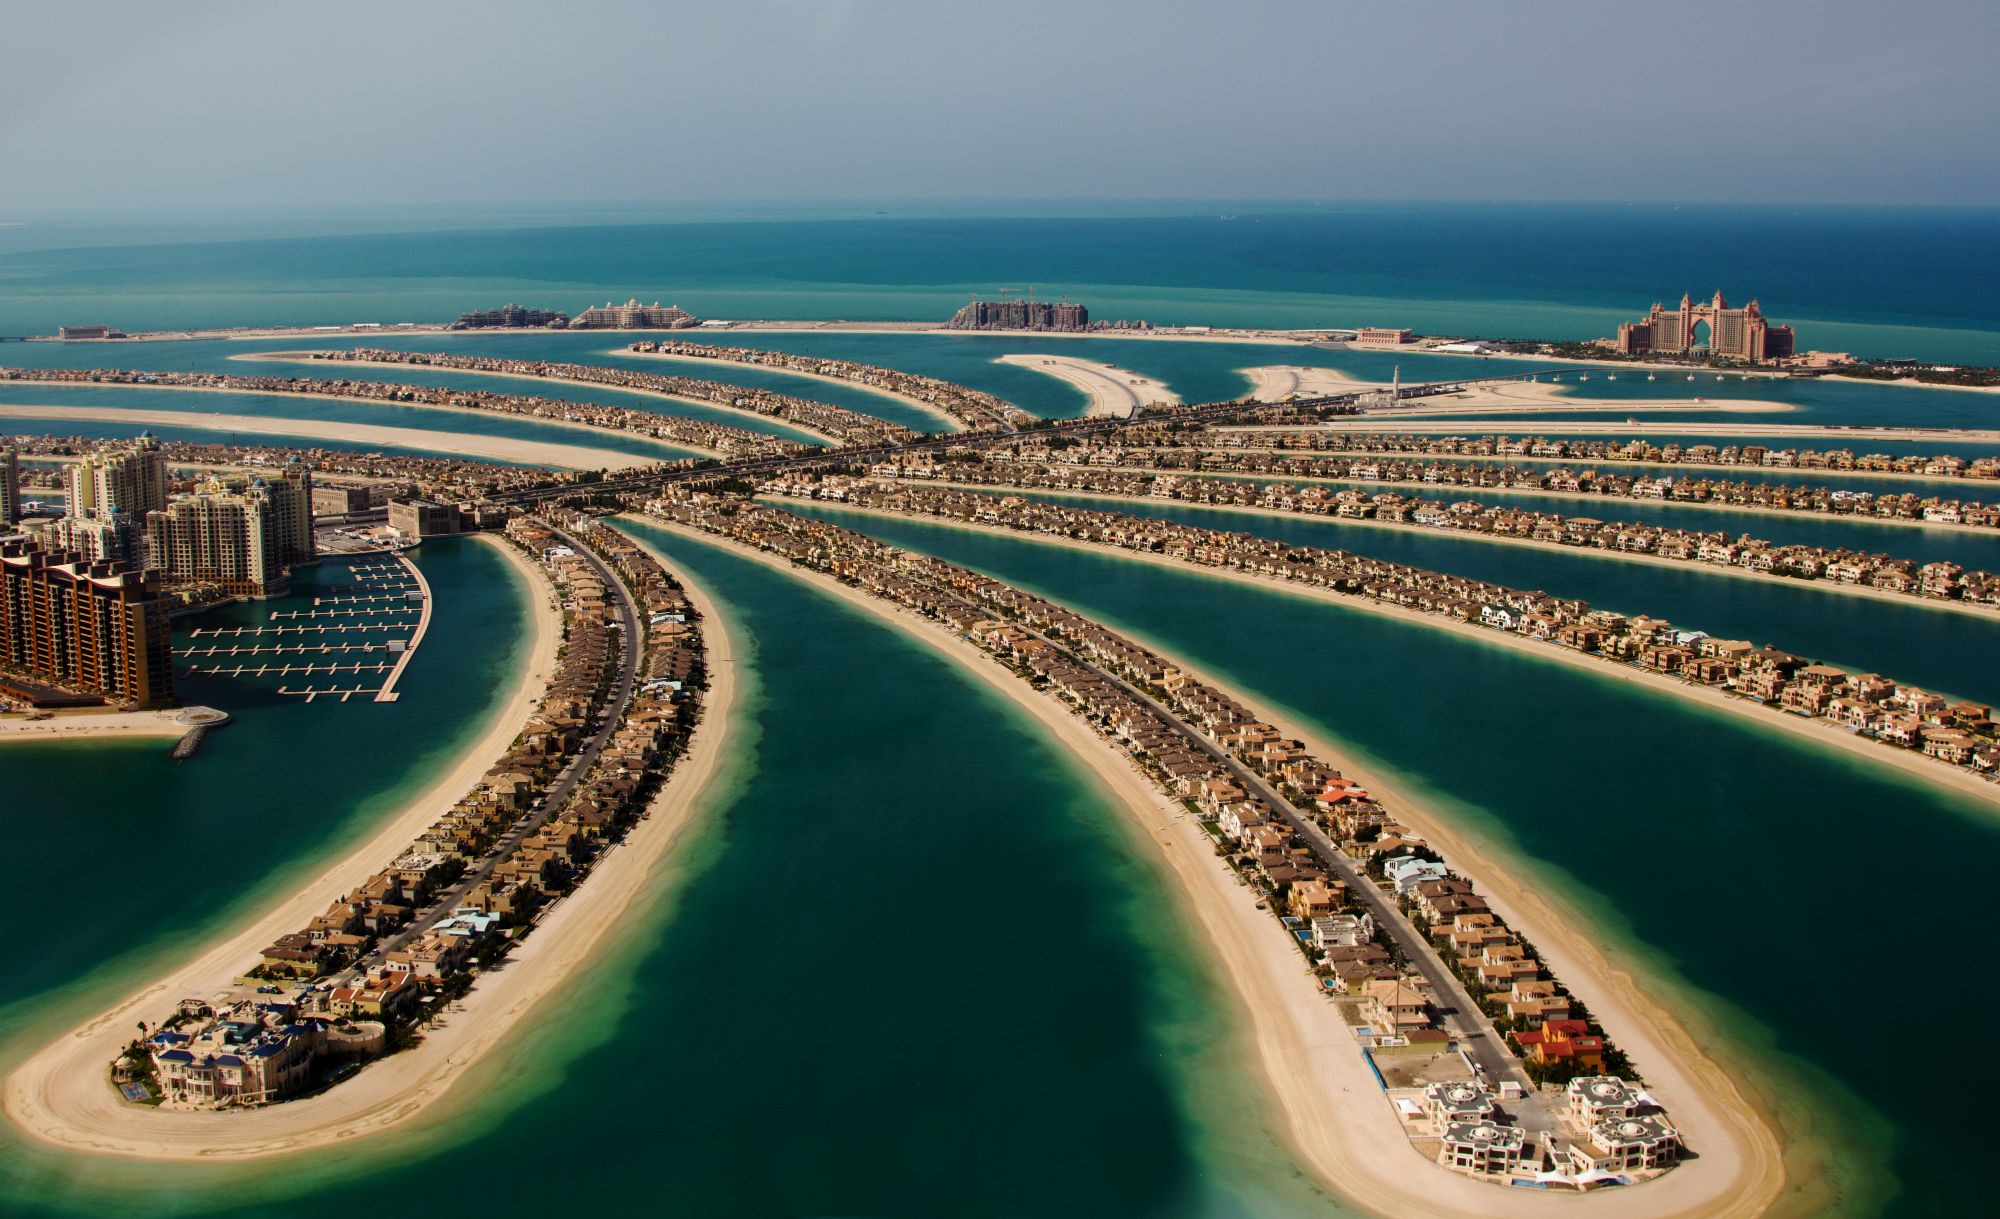 Top 10 Places to Live in Dubai